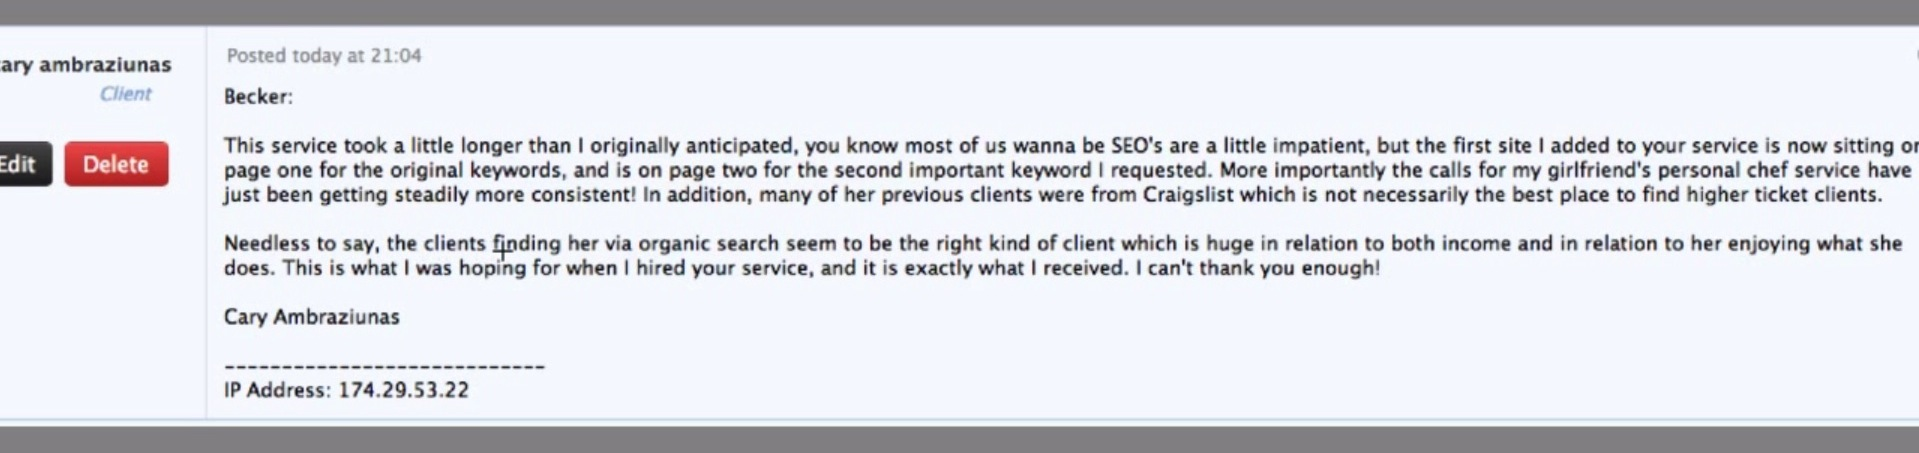 chef service on autopilot seo